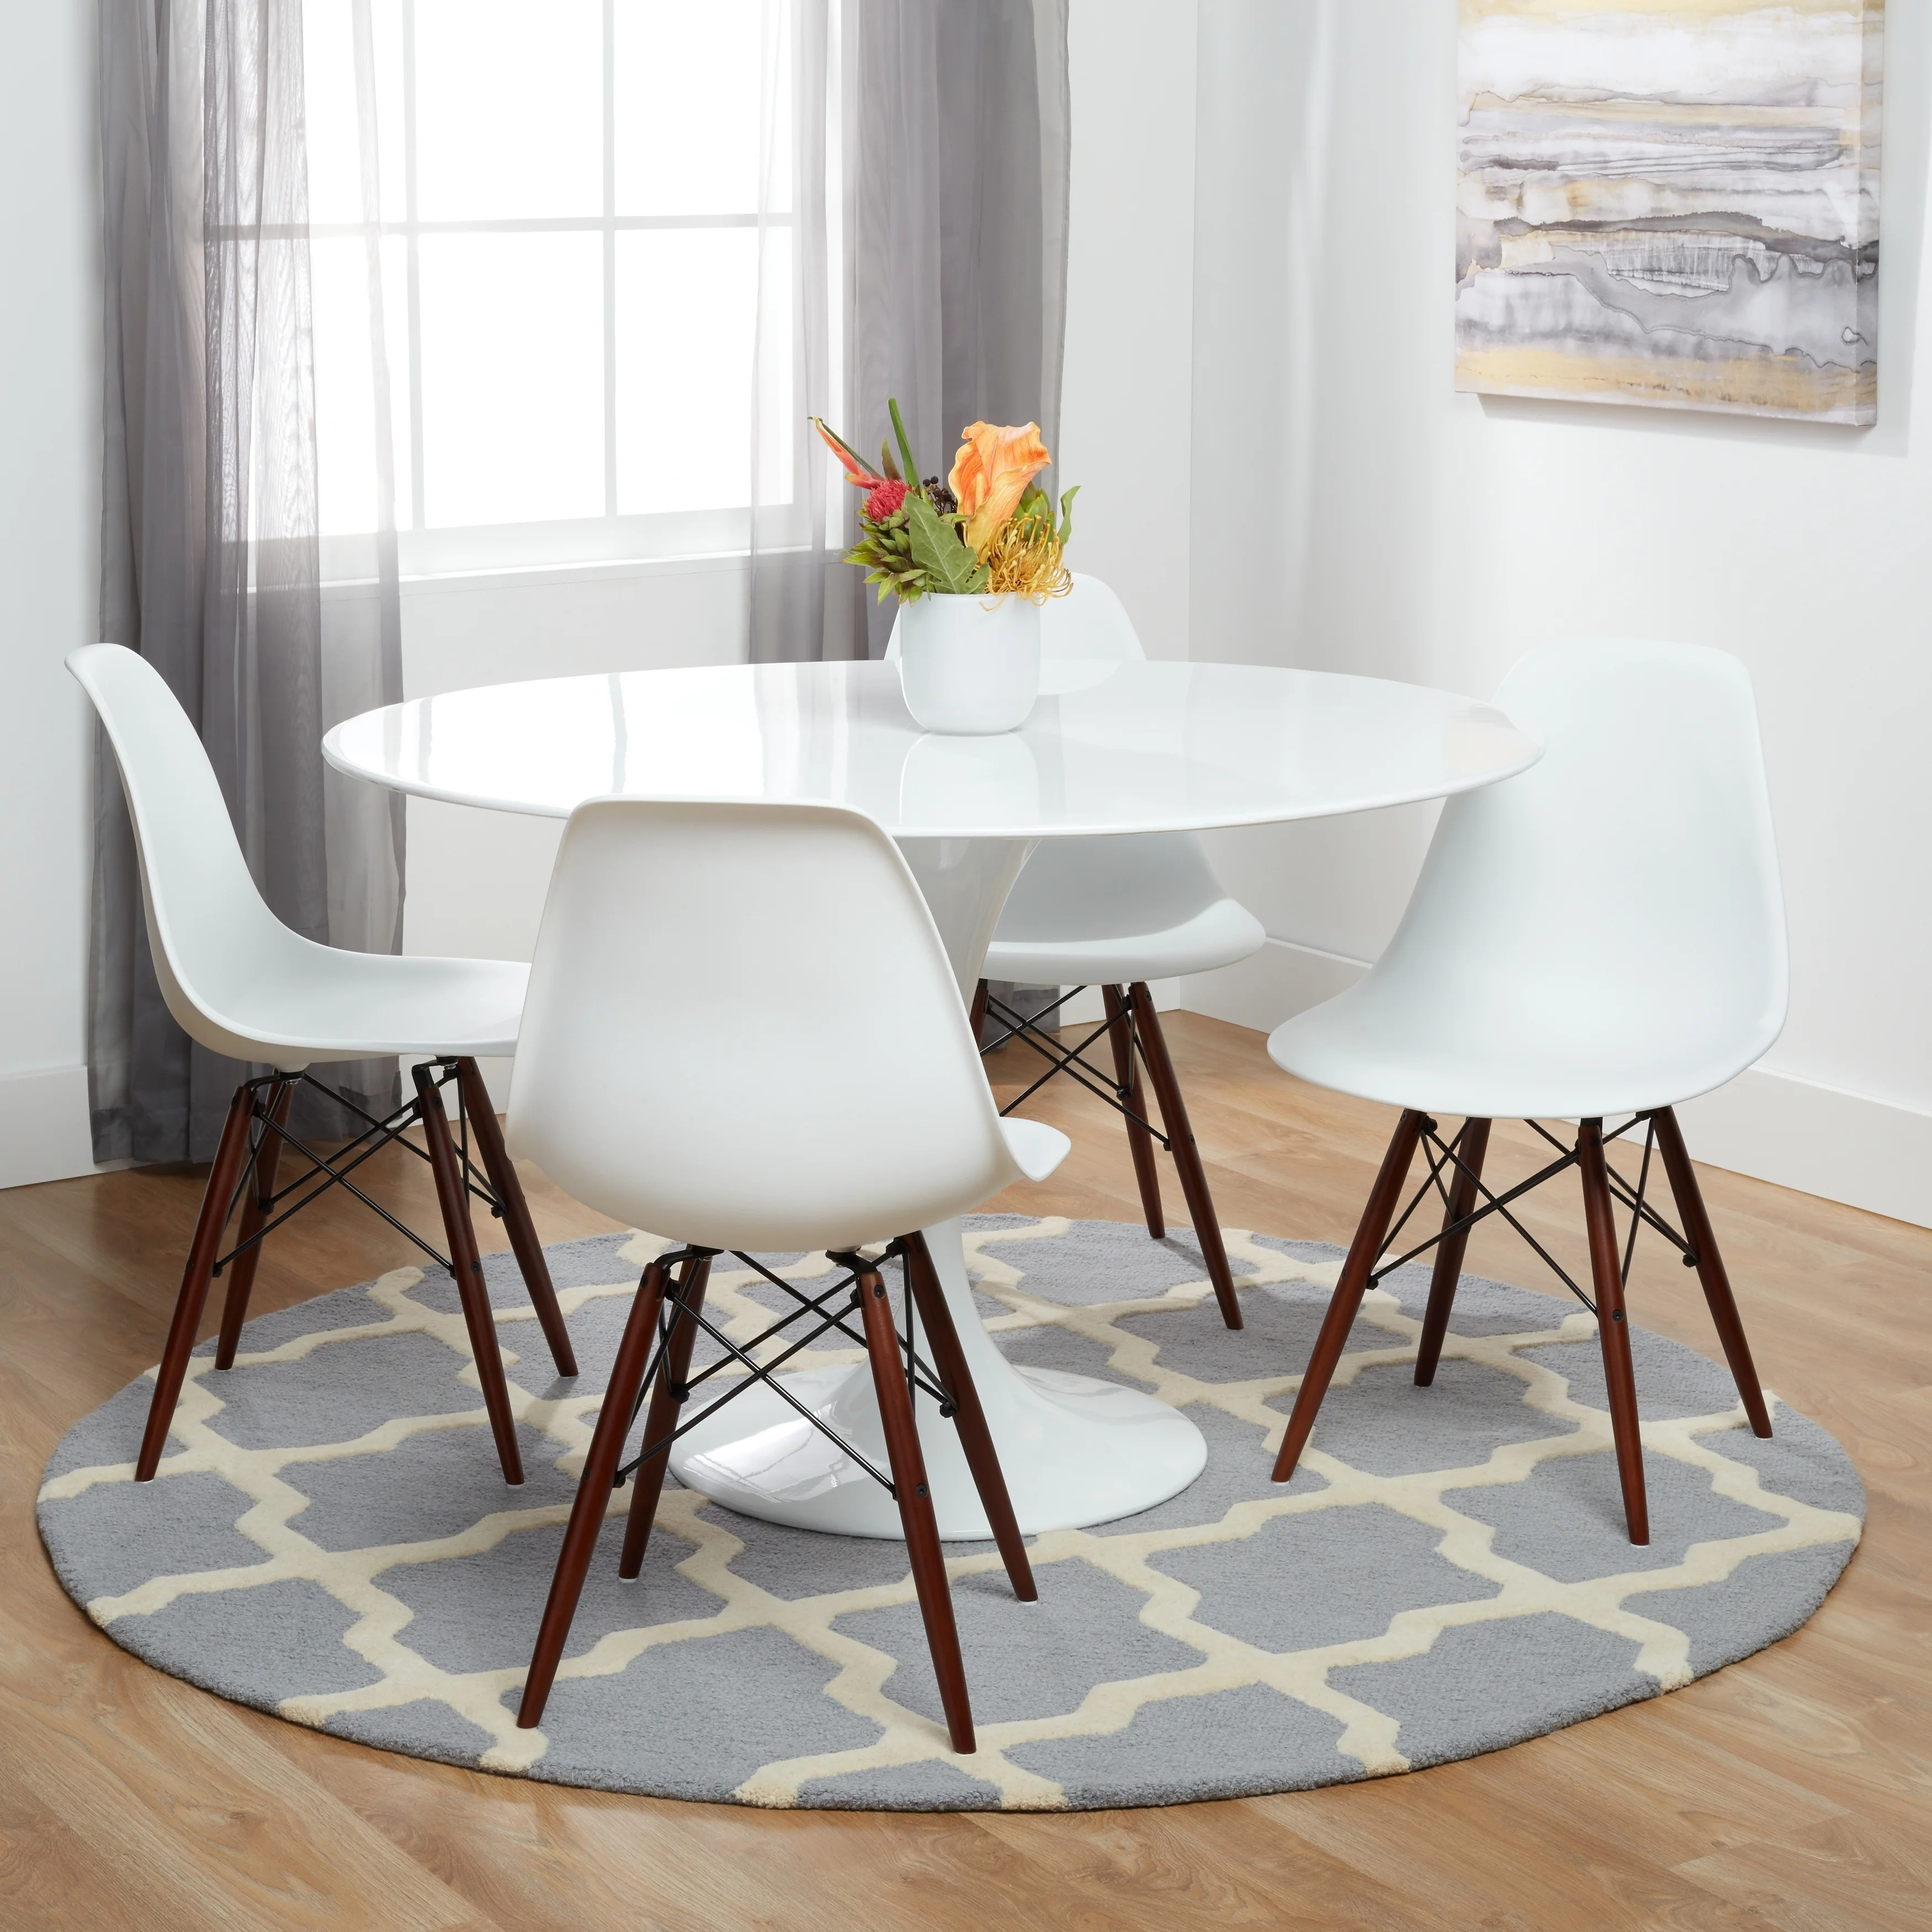 Modern Kitchen Chairs Buy Modern Contemporary Kitchen Dining Room Chairs Online At